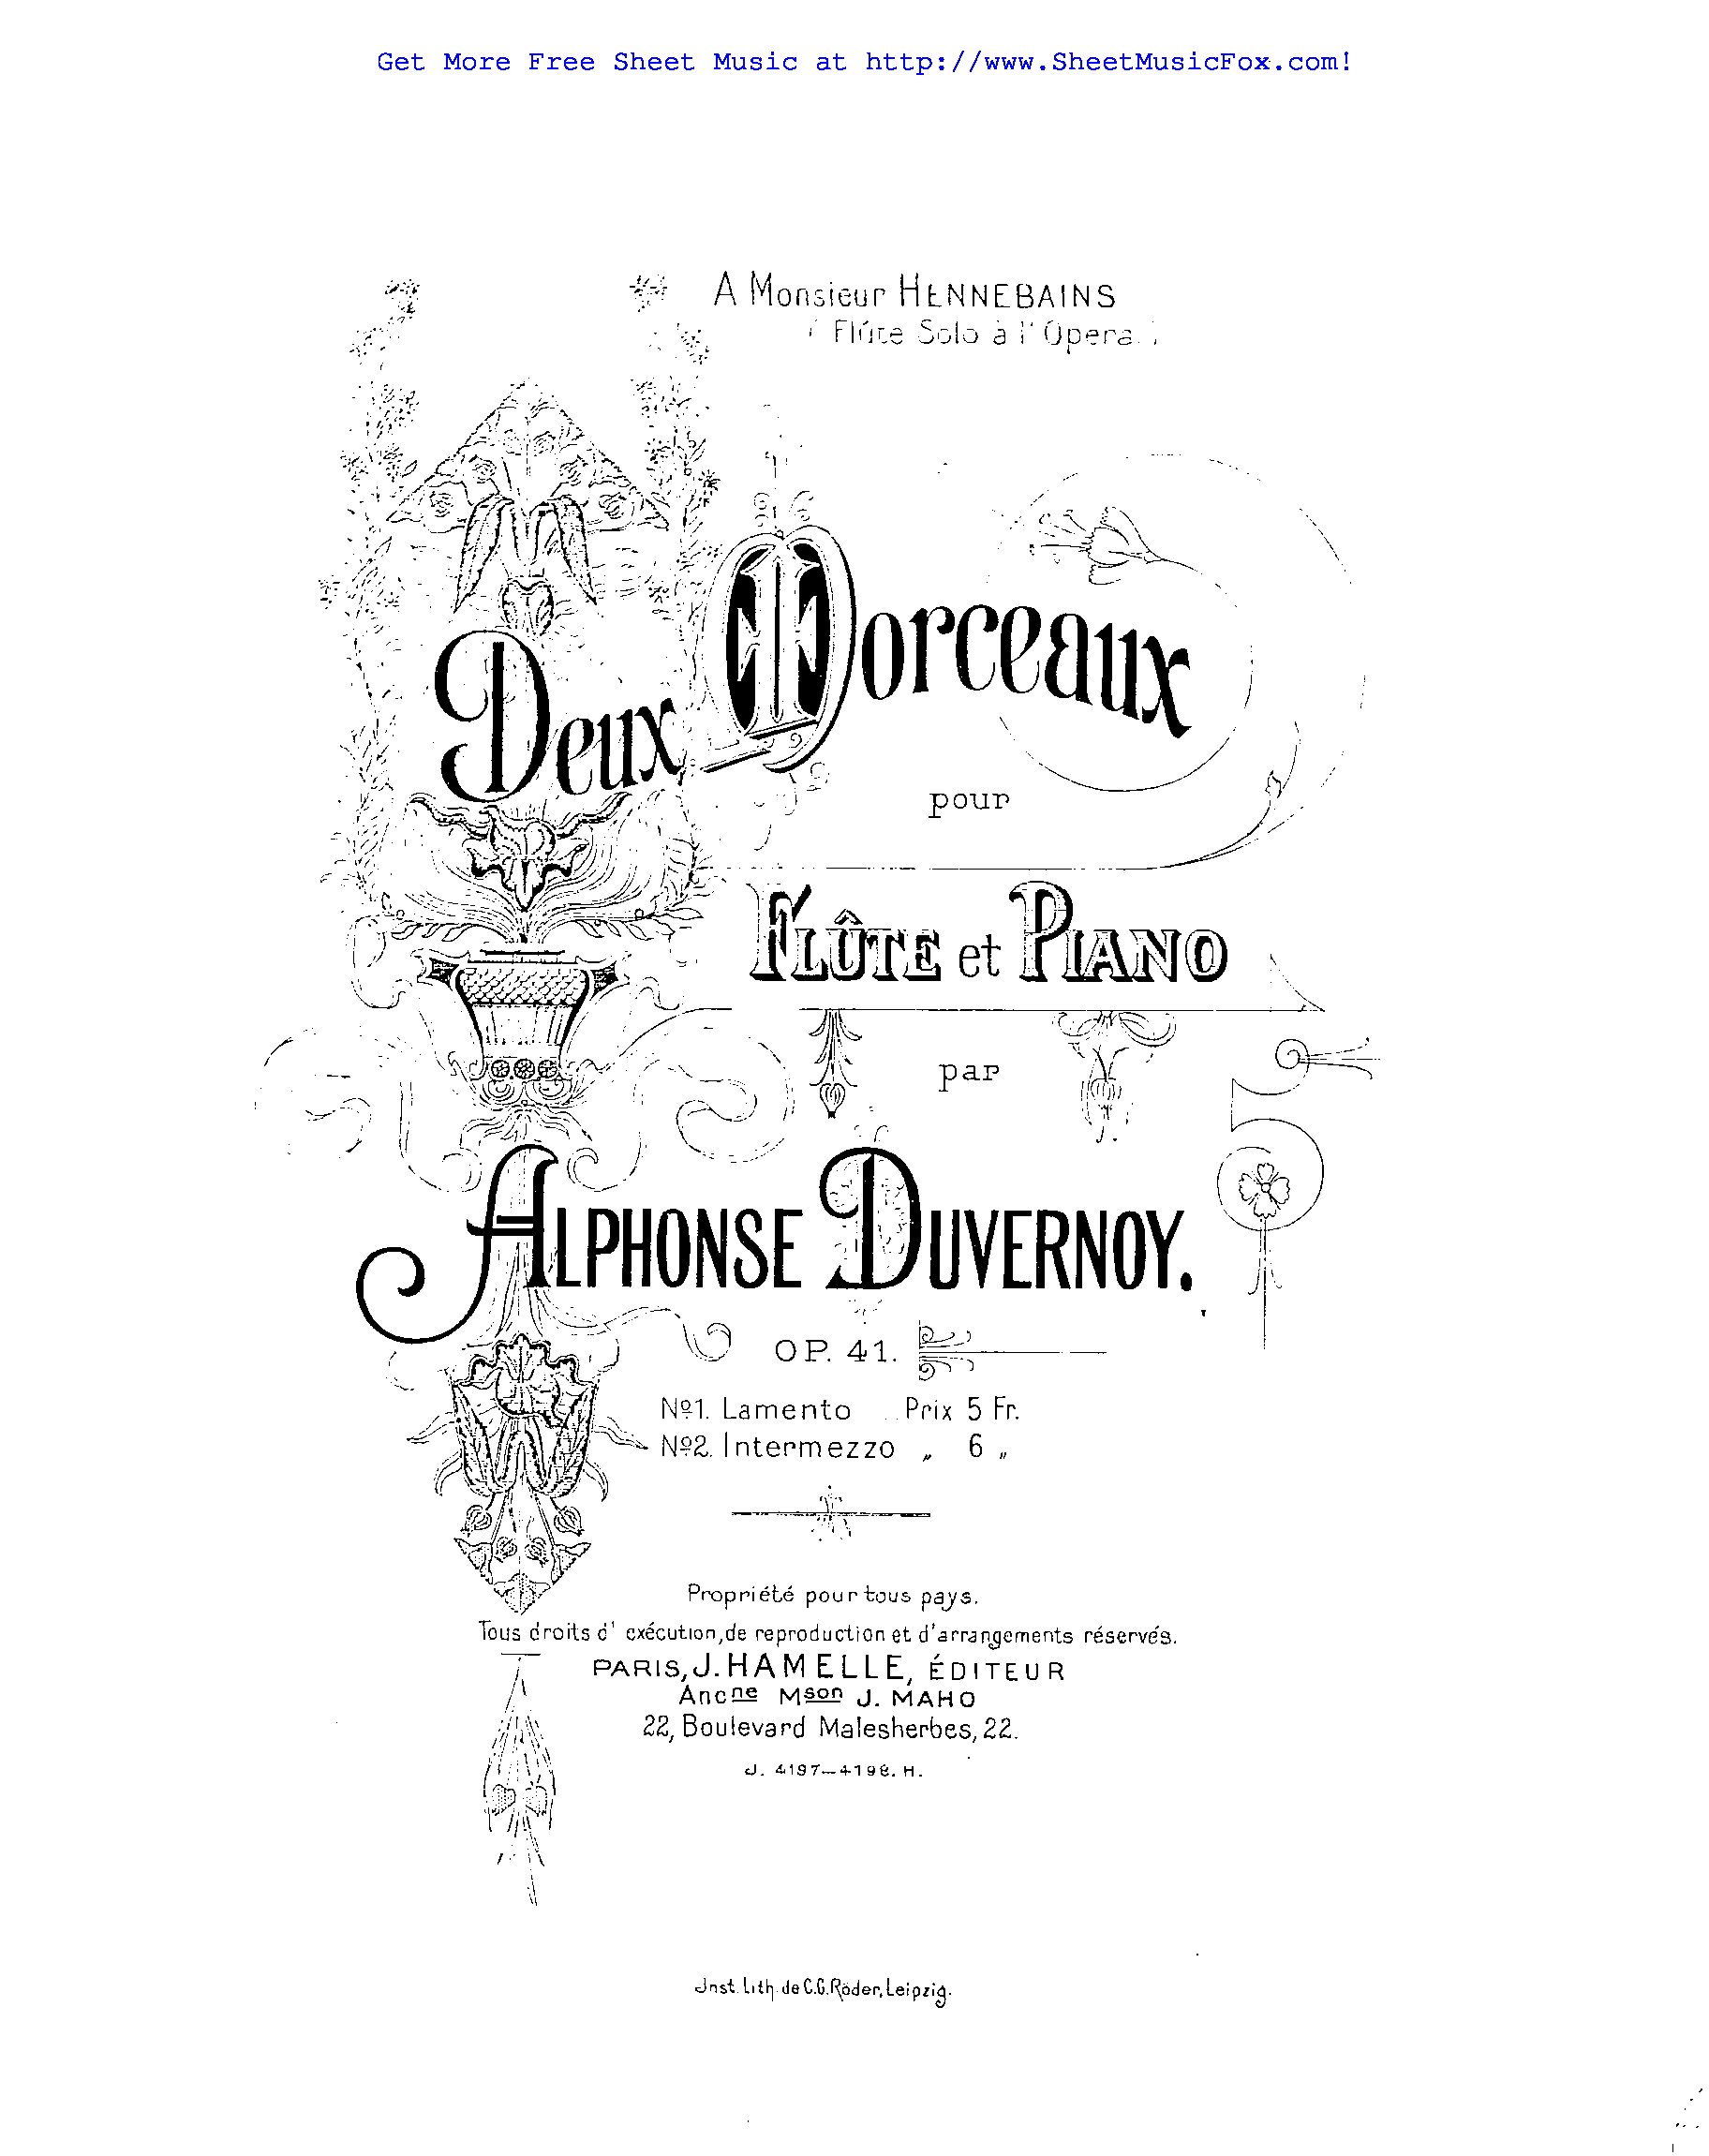 Free sheet music for 2 Morceaux for Flute and Piano, Op.41